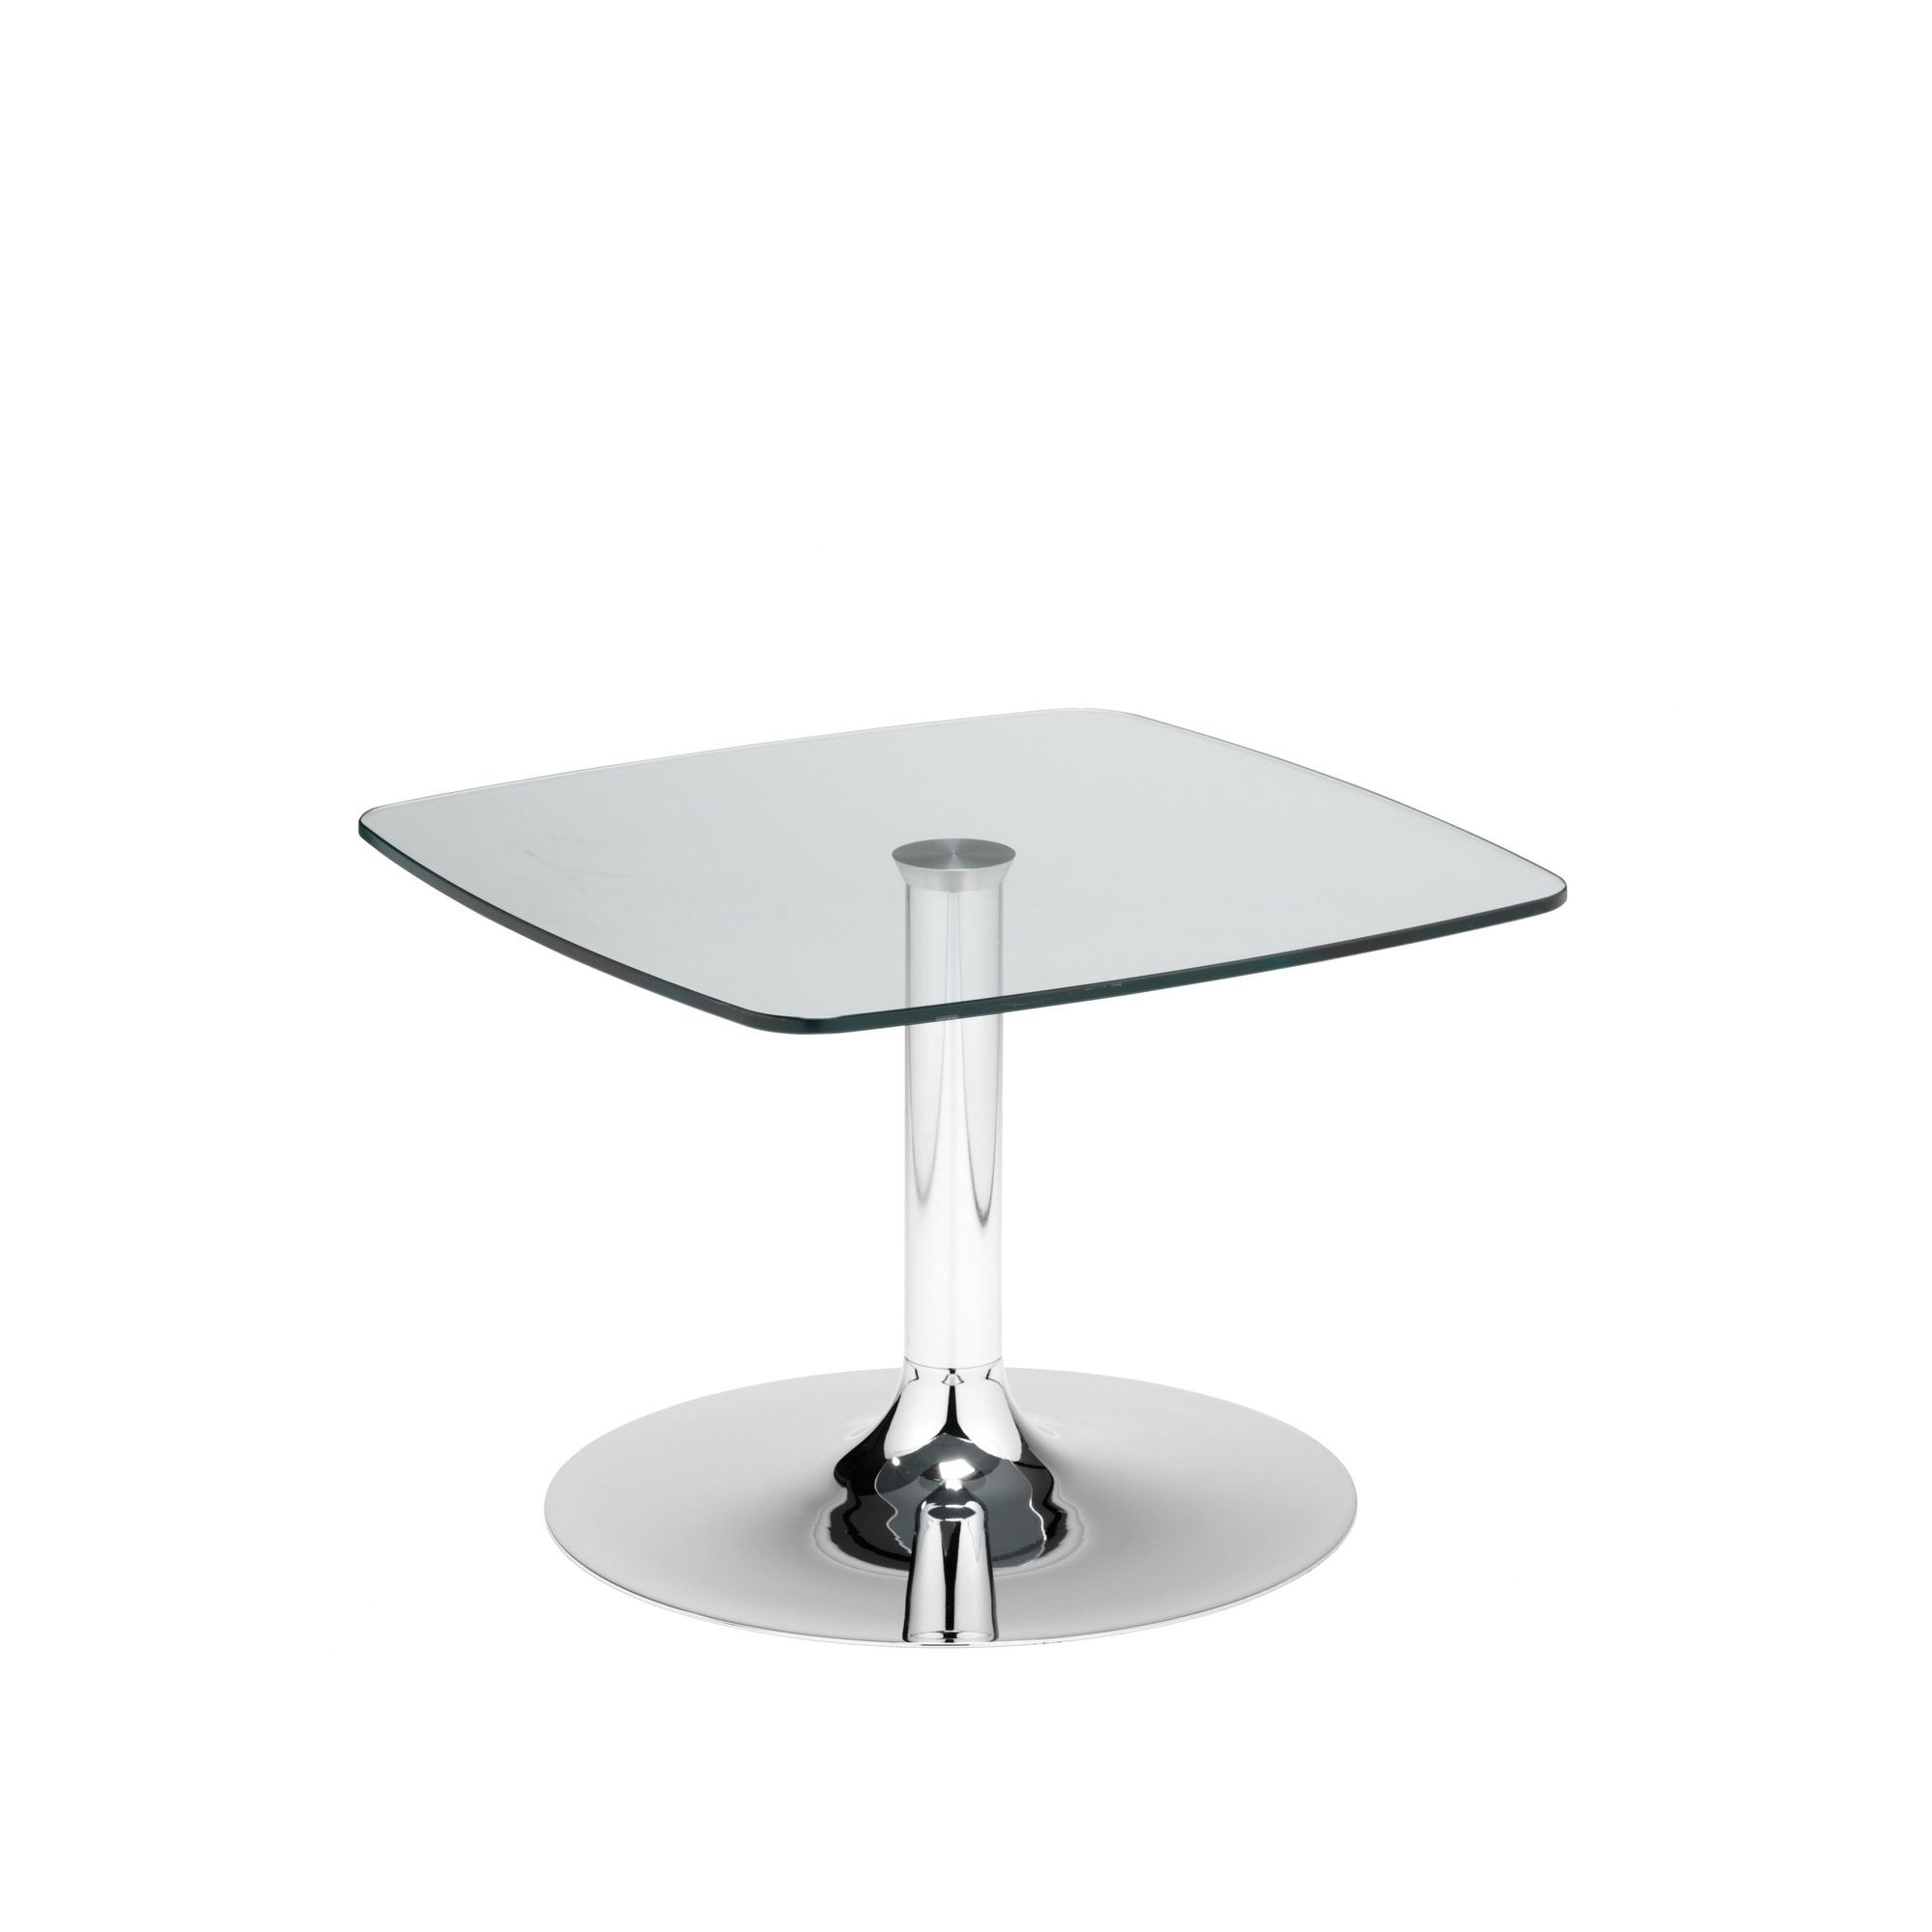 Ocee Design Venalo Trumpet Base Coffee Table at Tesco Direct